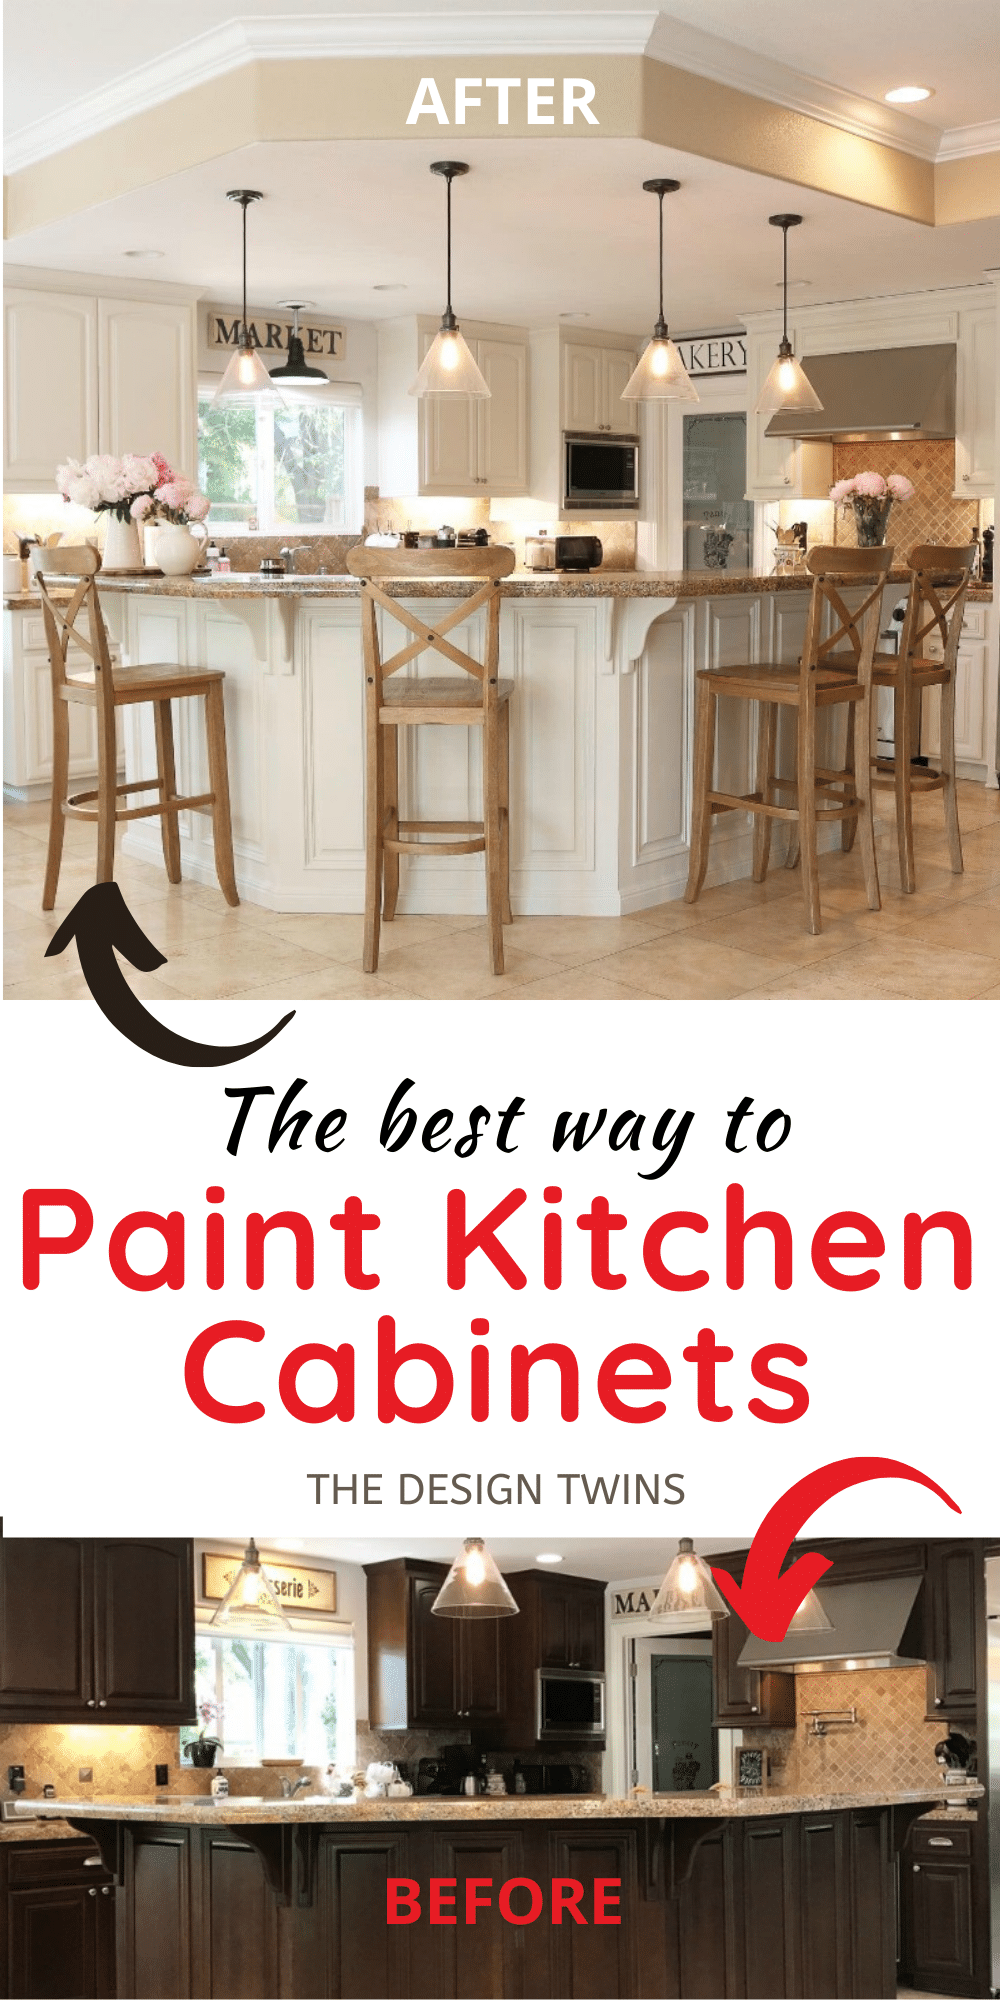 Step By Step How To Paint Kitchen Cabinets Side By Side Comparison Of Mineral Paint Vs Acrylic Paint Kitchen Paint Painting Kitchen Cabinets Kitchen Cabinets